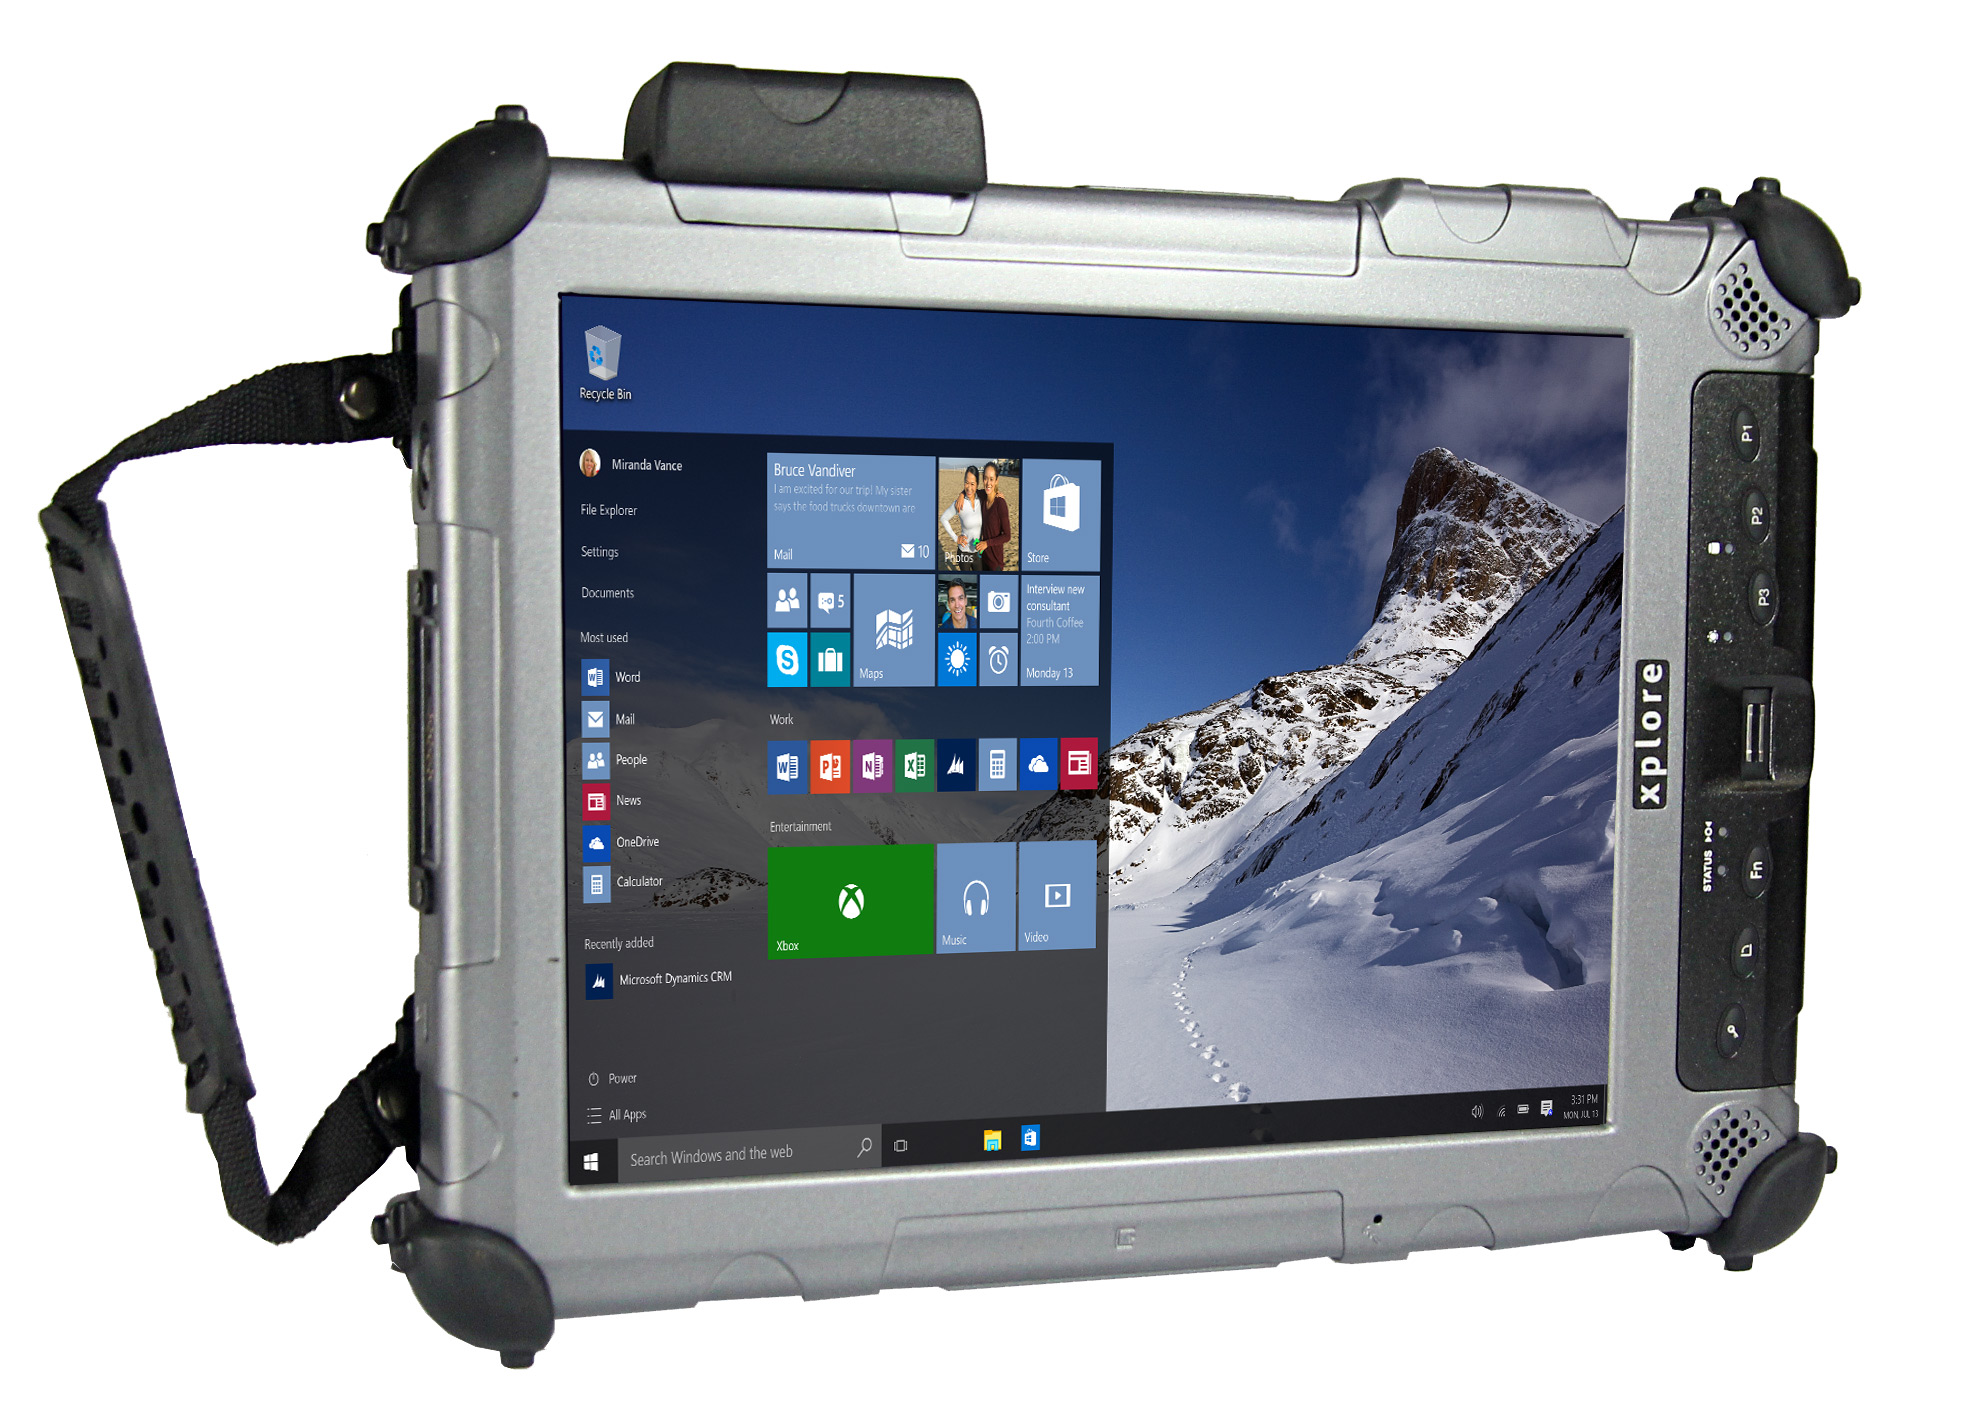 XC6 DMSR: The Sunlight Readable and Ultra Rugged XC6 DMSR Windows® 7/8.1/10 tablet.